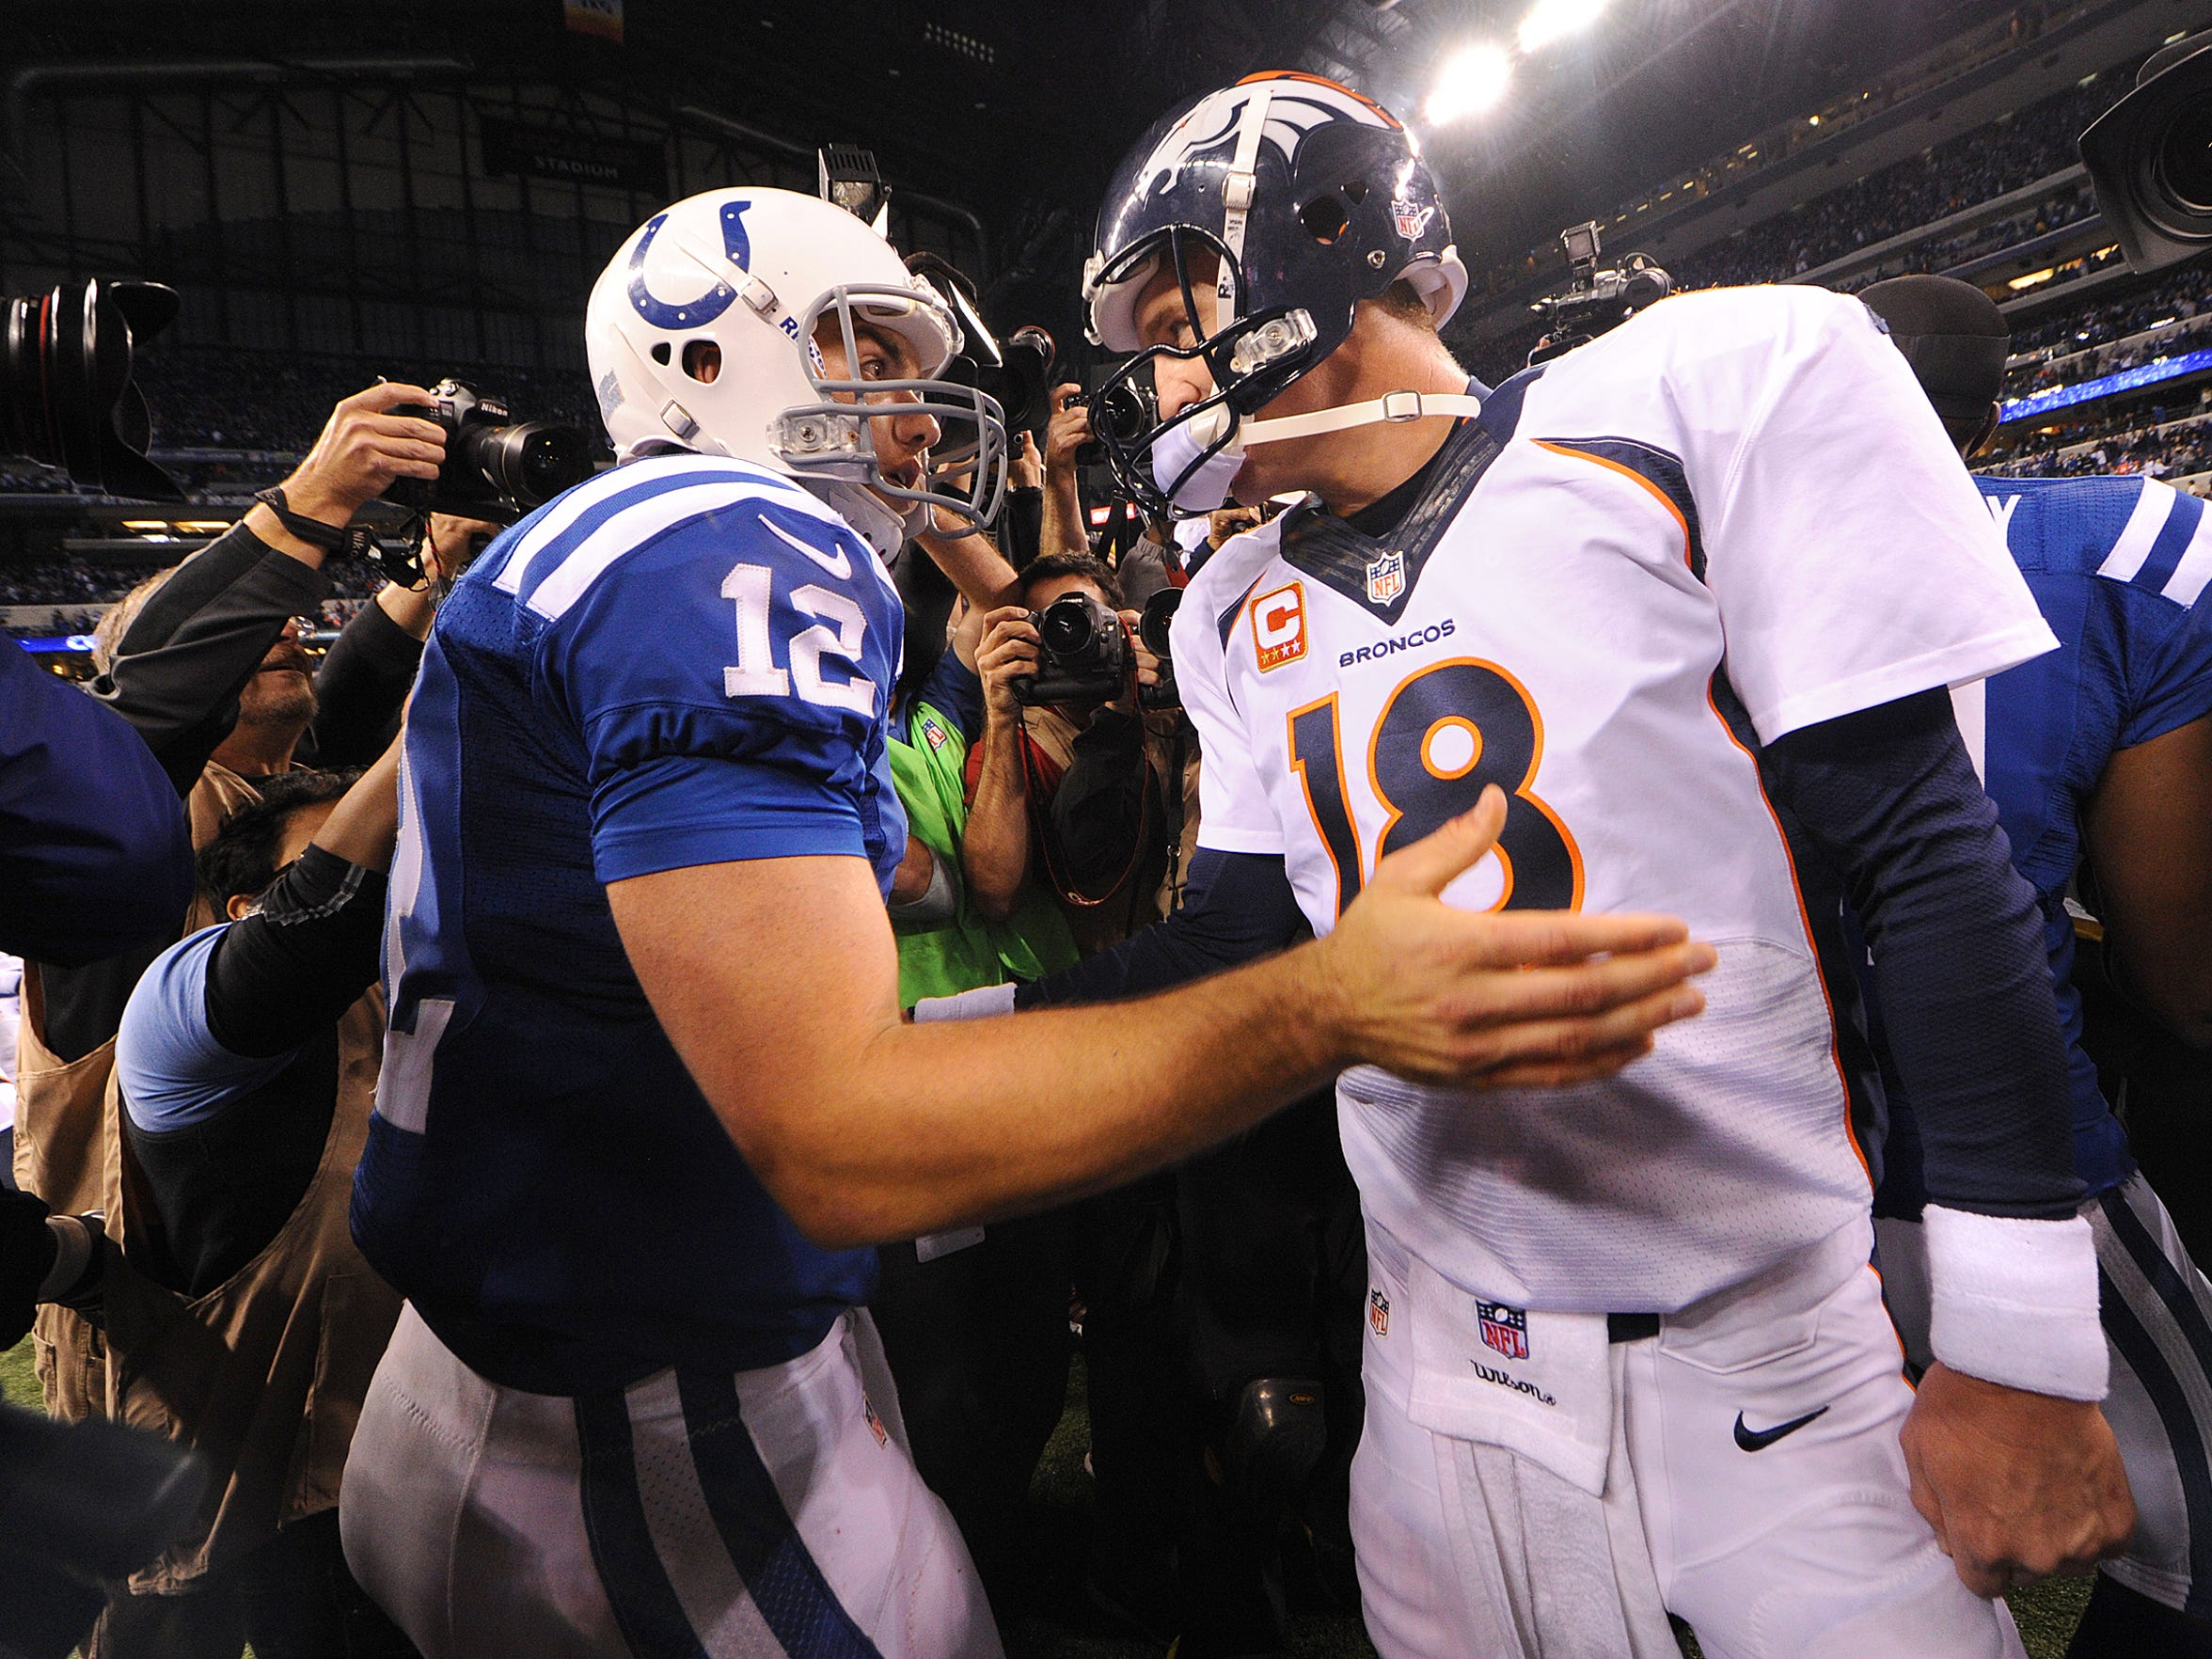 Andrew Luck and Peyton Manning meet on the field at Lucas Oil Stadium after their first NFL meeting, a 39-33 Colts win in 2013.